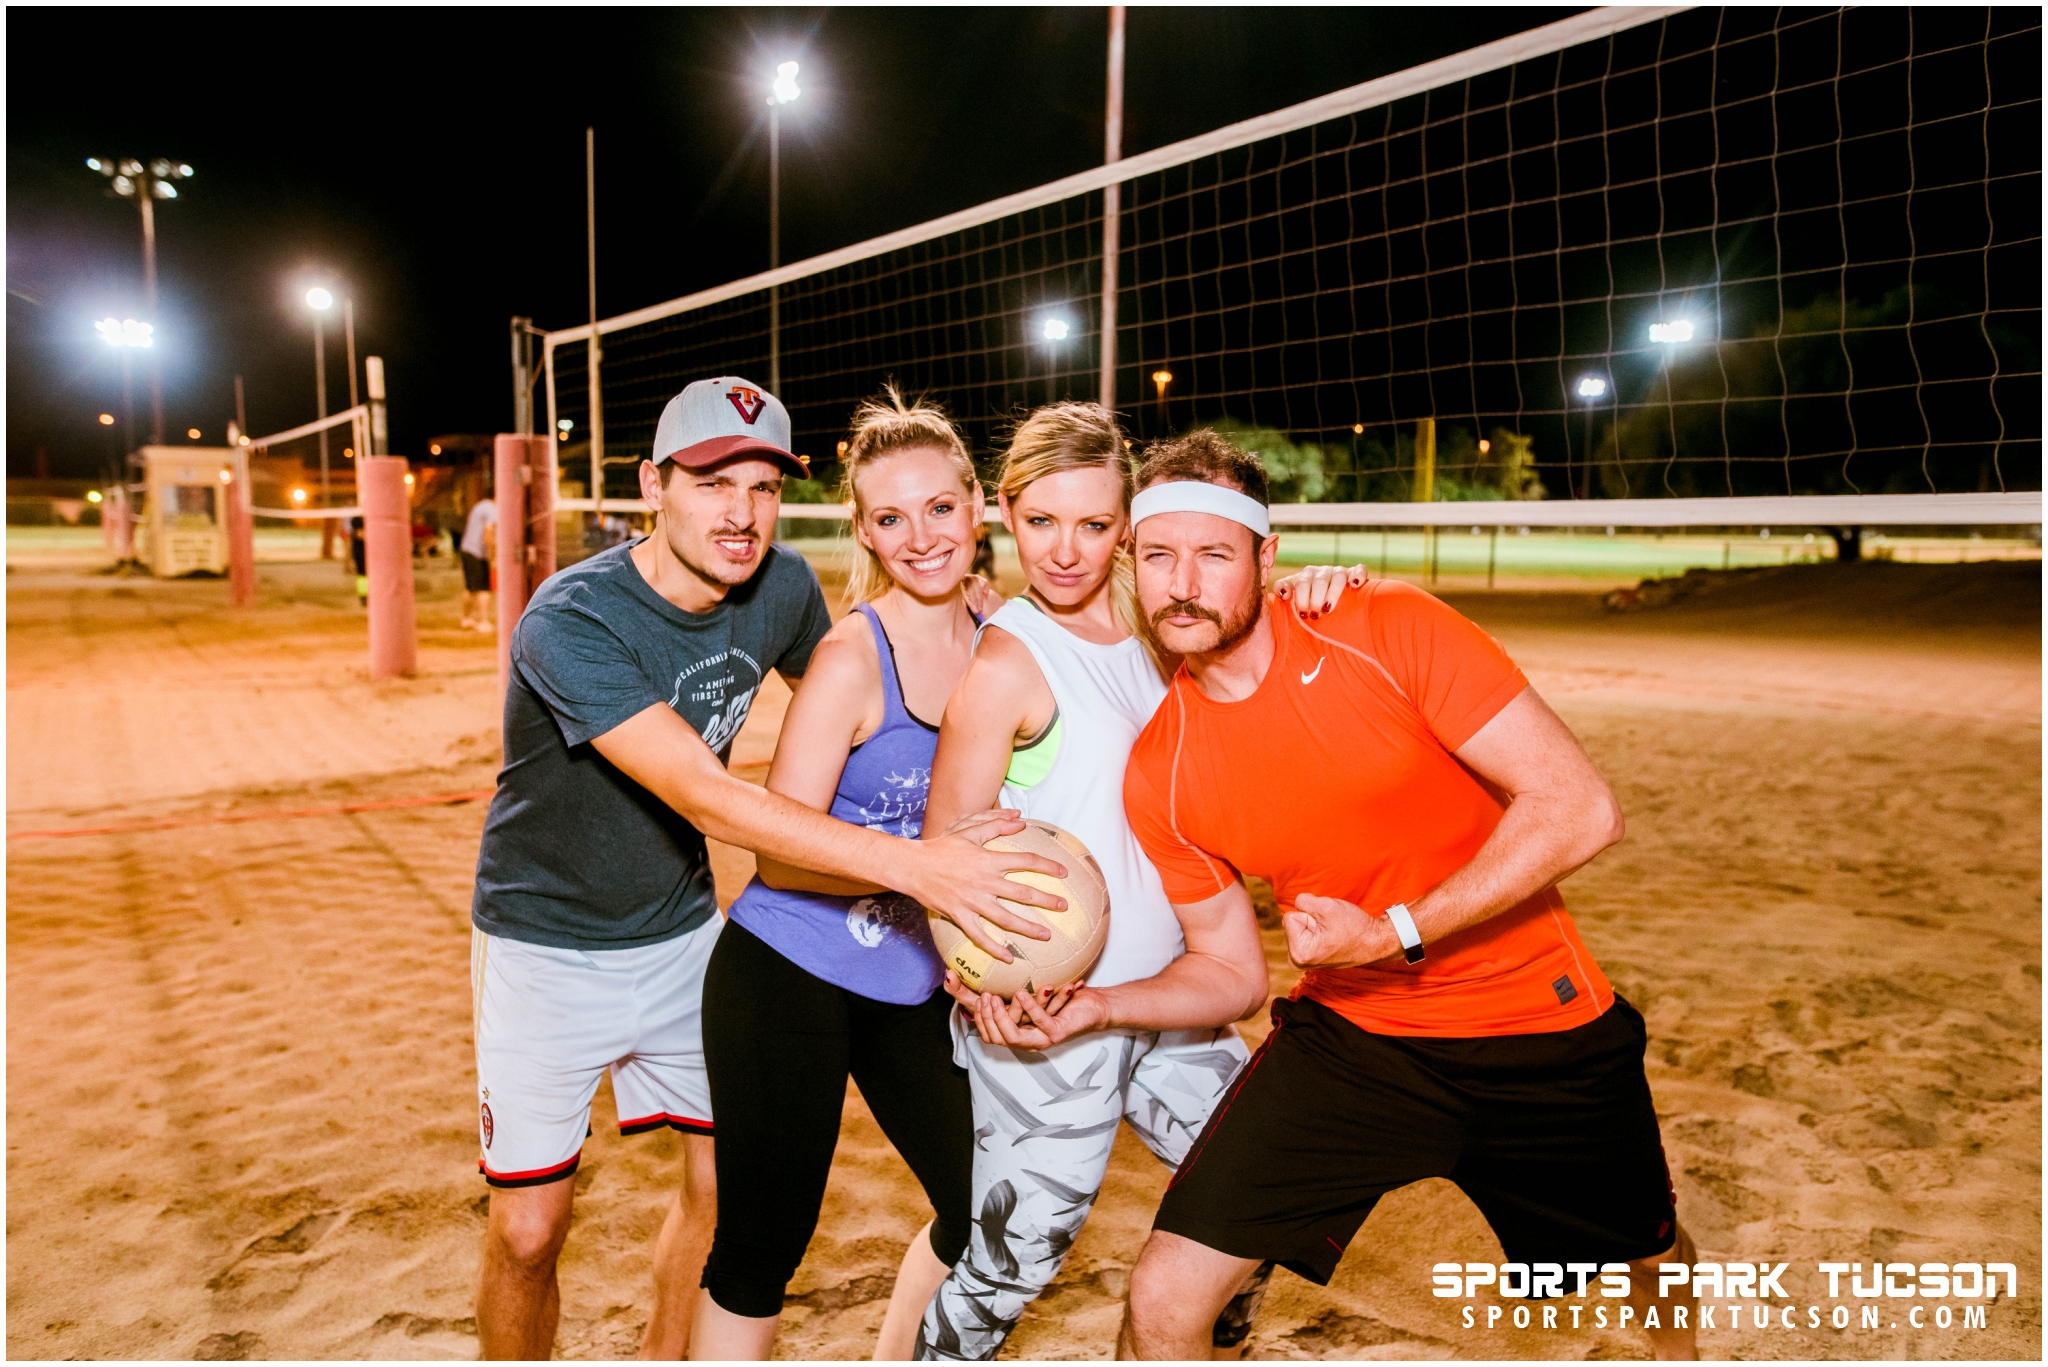 Volleyball Wed Co-ed 4 v 4 - Silver, Team: Bump, Set, Psych